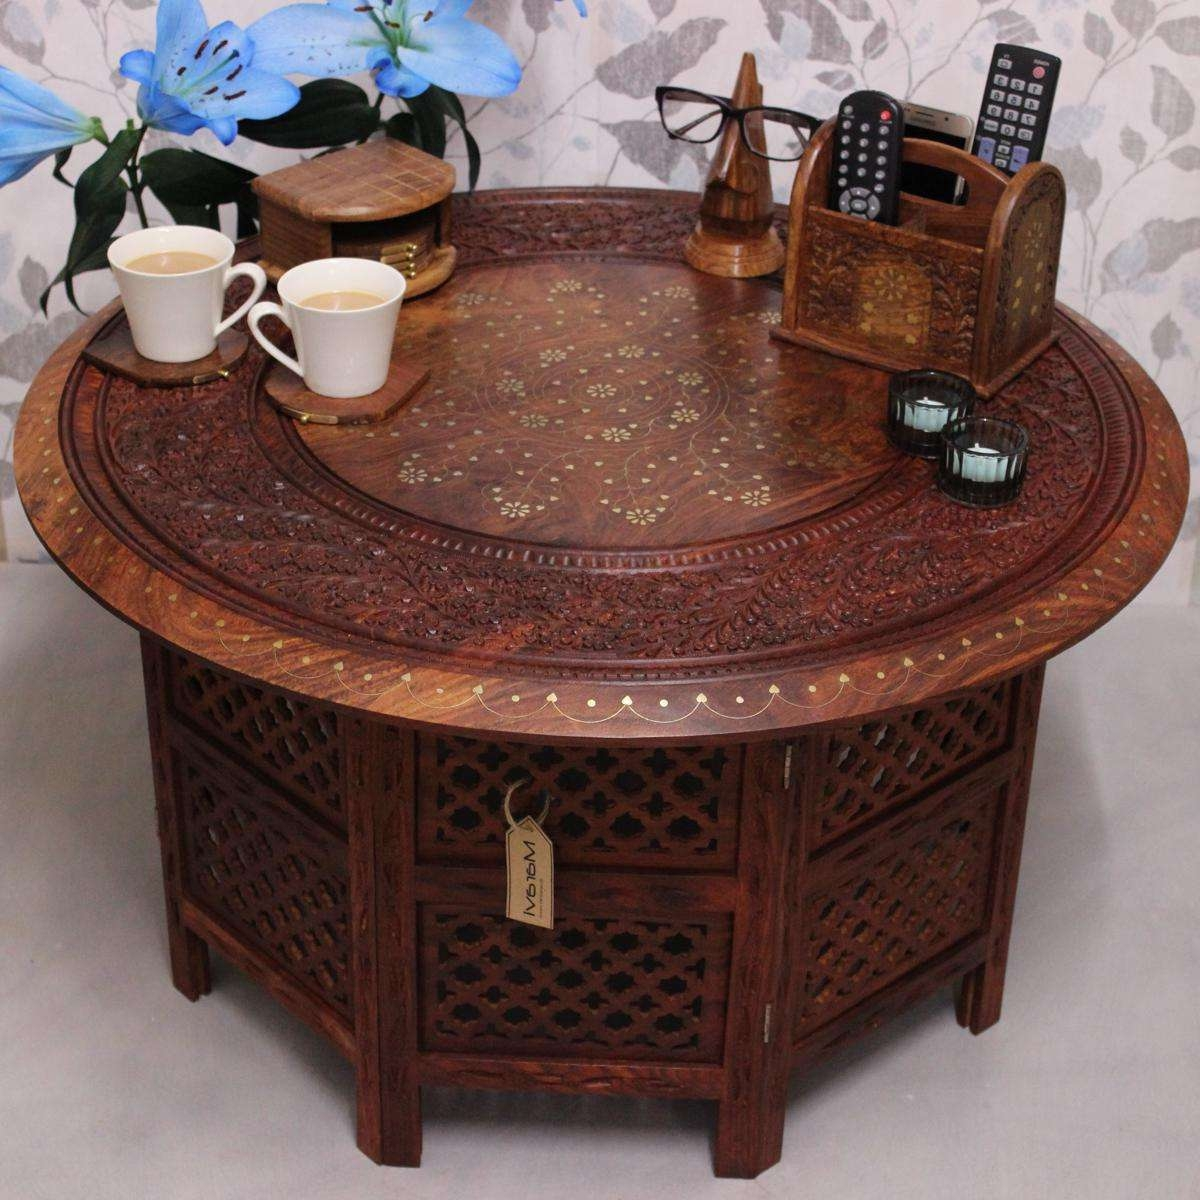 Preferred Indian Coffee Tables Pertaining To Karakoram Maravi Large Round Coffee Table Brown Solid Wooden (View 14 of 20)